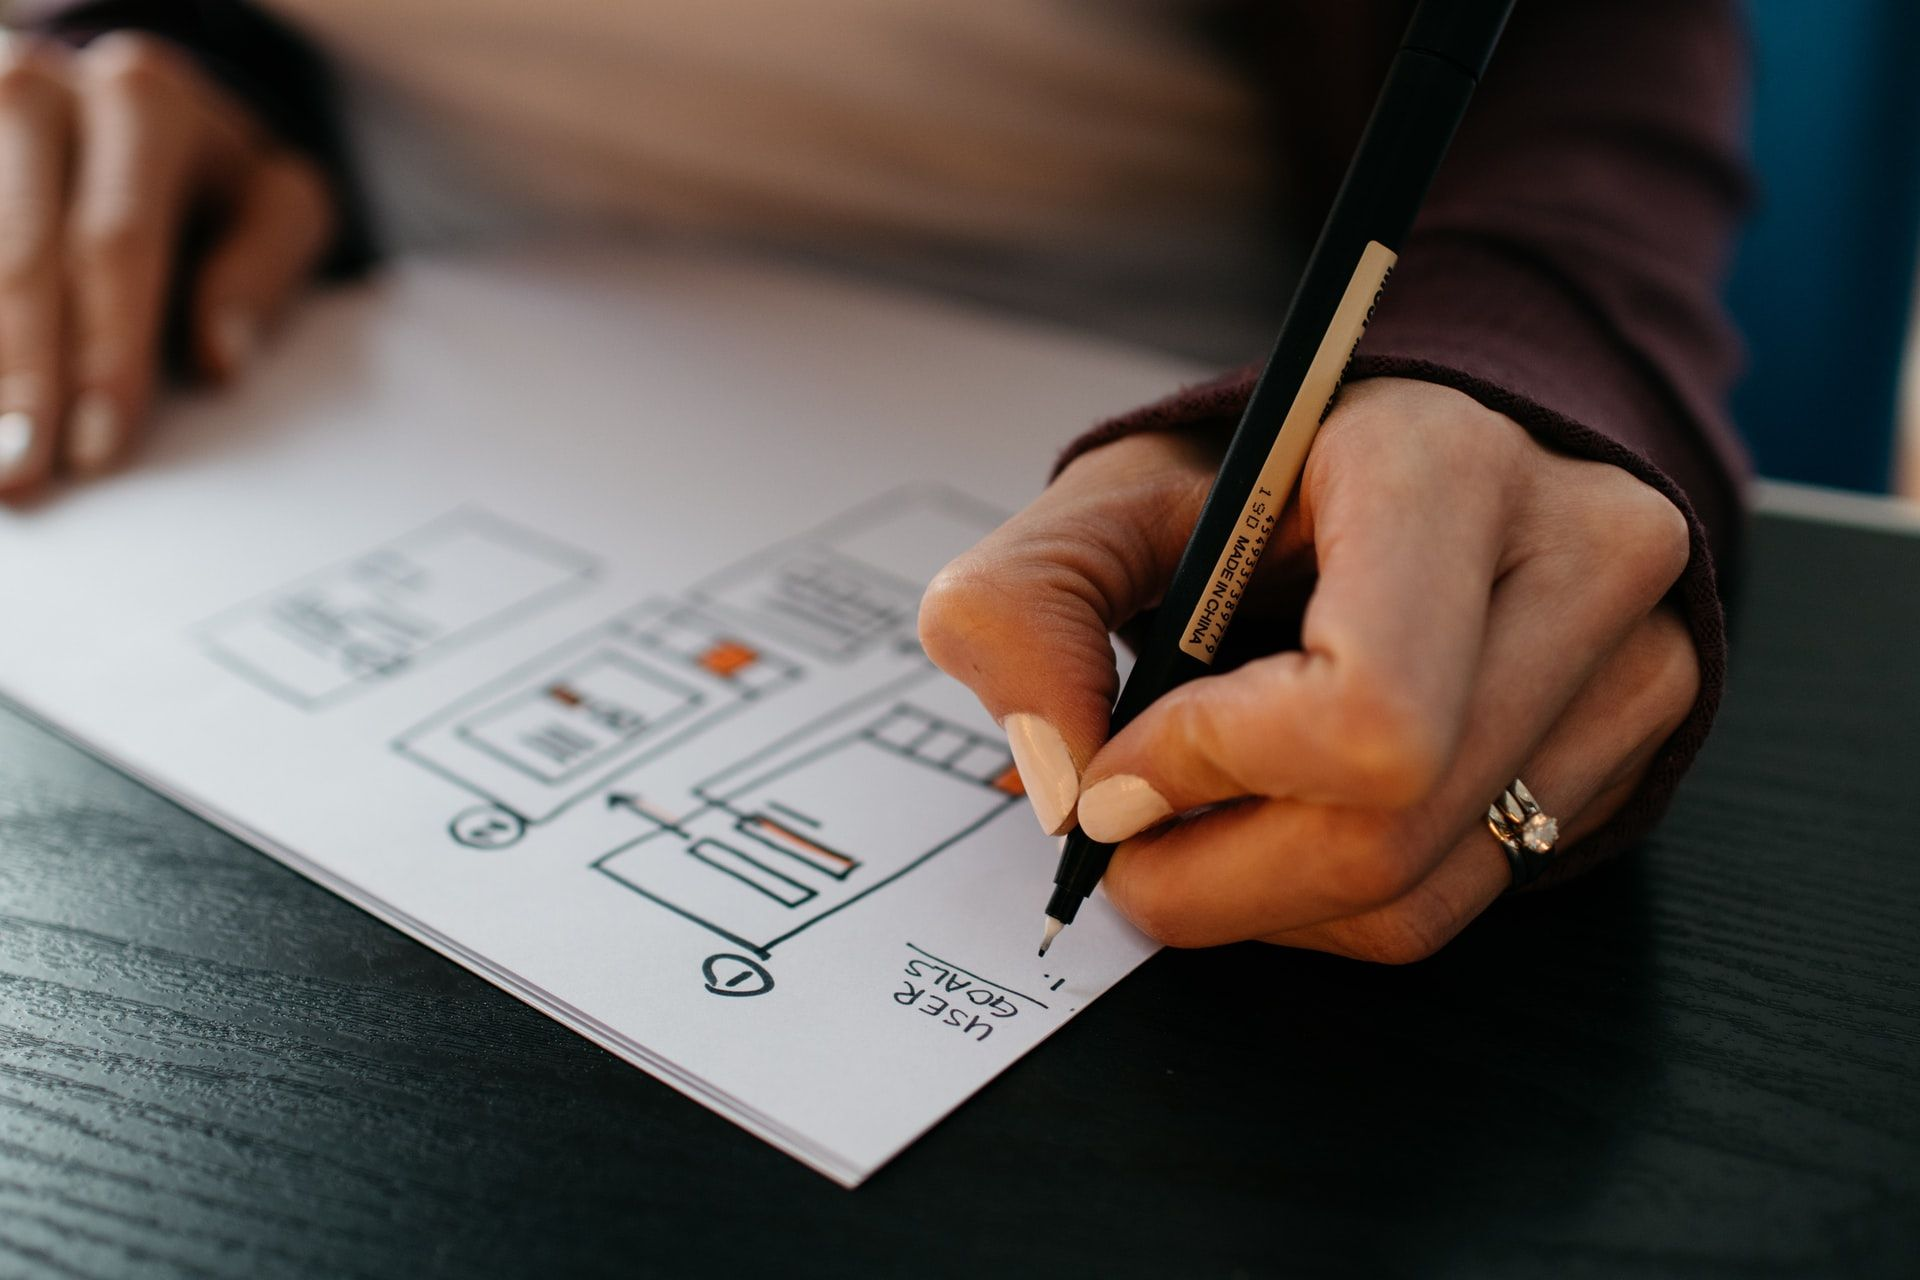 A woman sketching out an intricate mobile app wireframe.